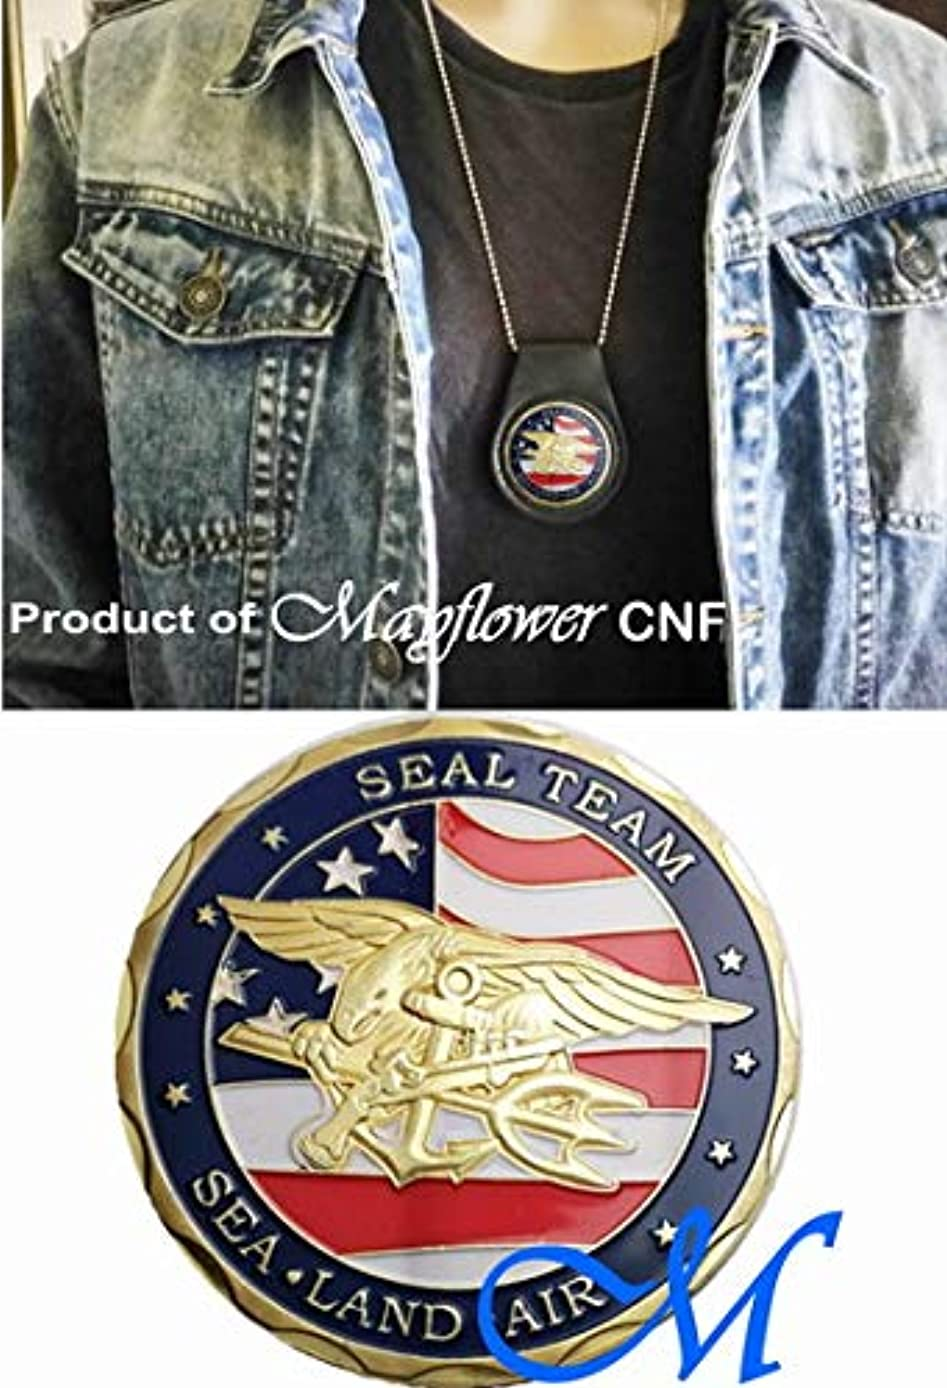 Mayflower CNF Coin &Leather Holder - U.S. Seal Team - Sea - Land - Air - Fight for Freedom